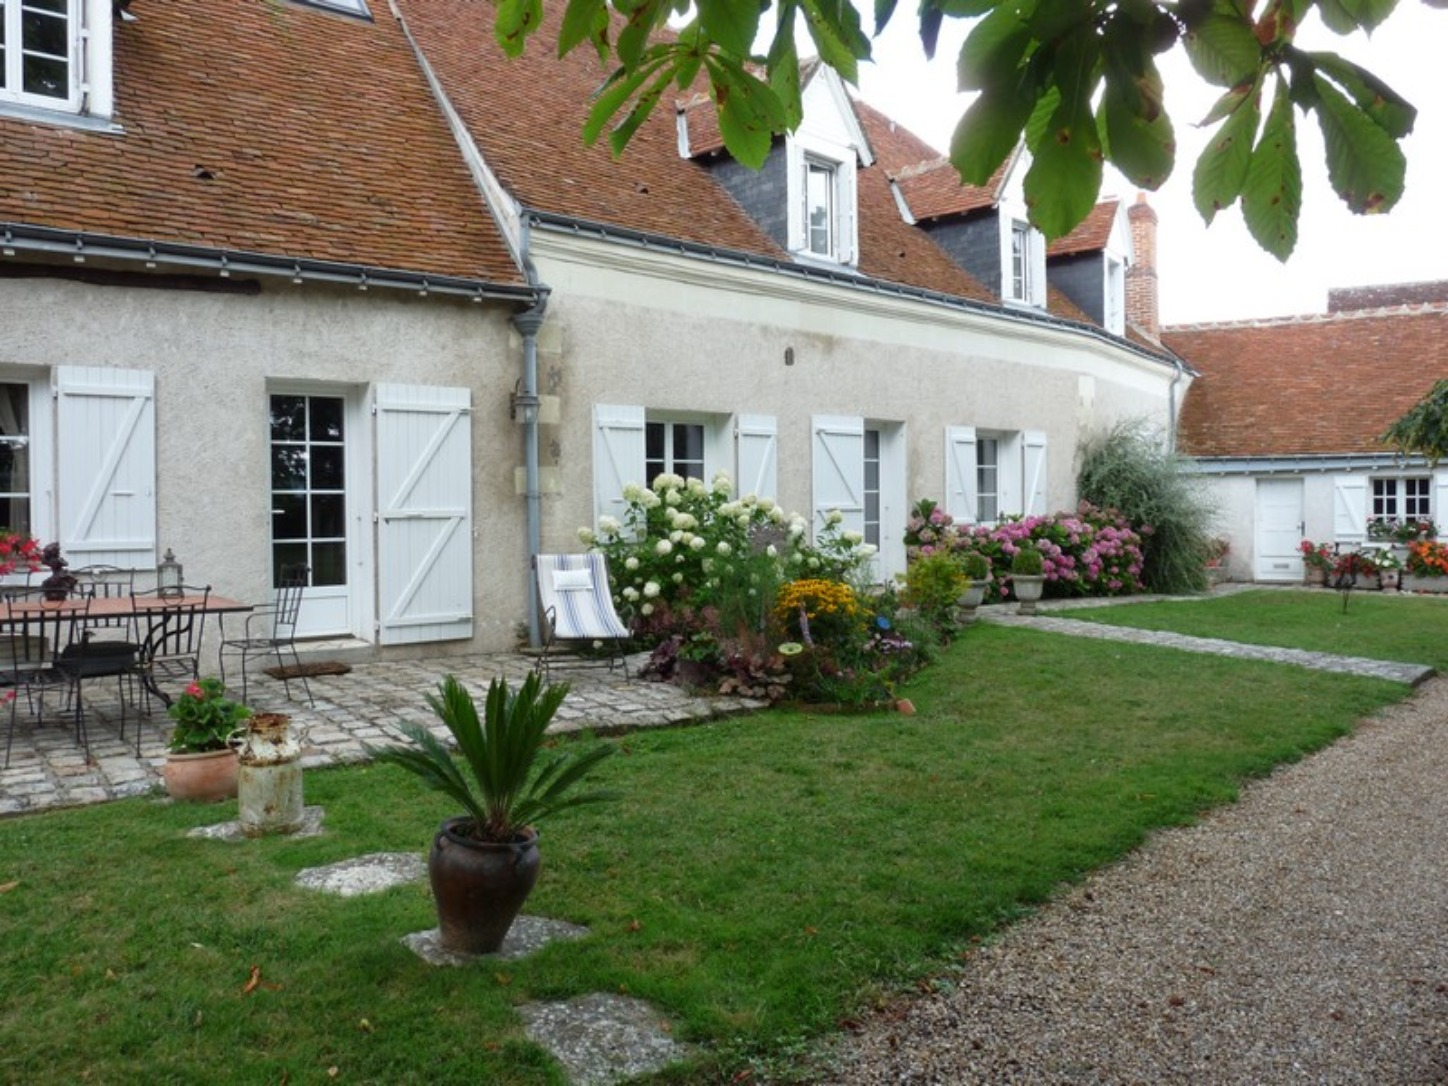 A large lawn in front of a house at AUX REFLETS DU CHER.